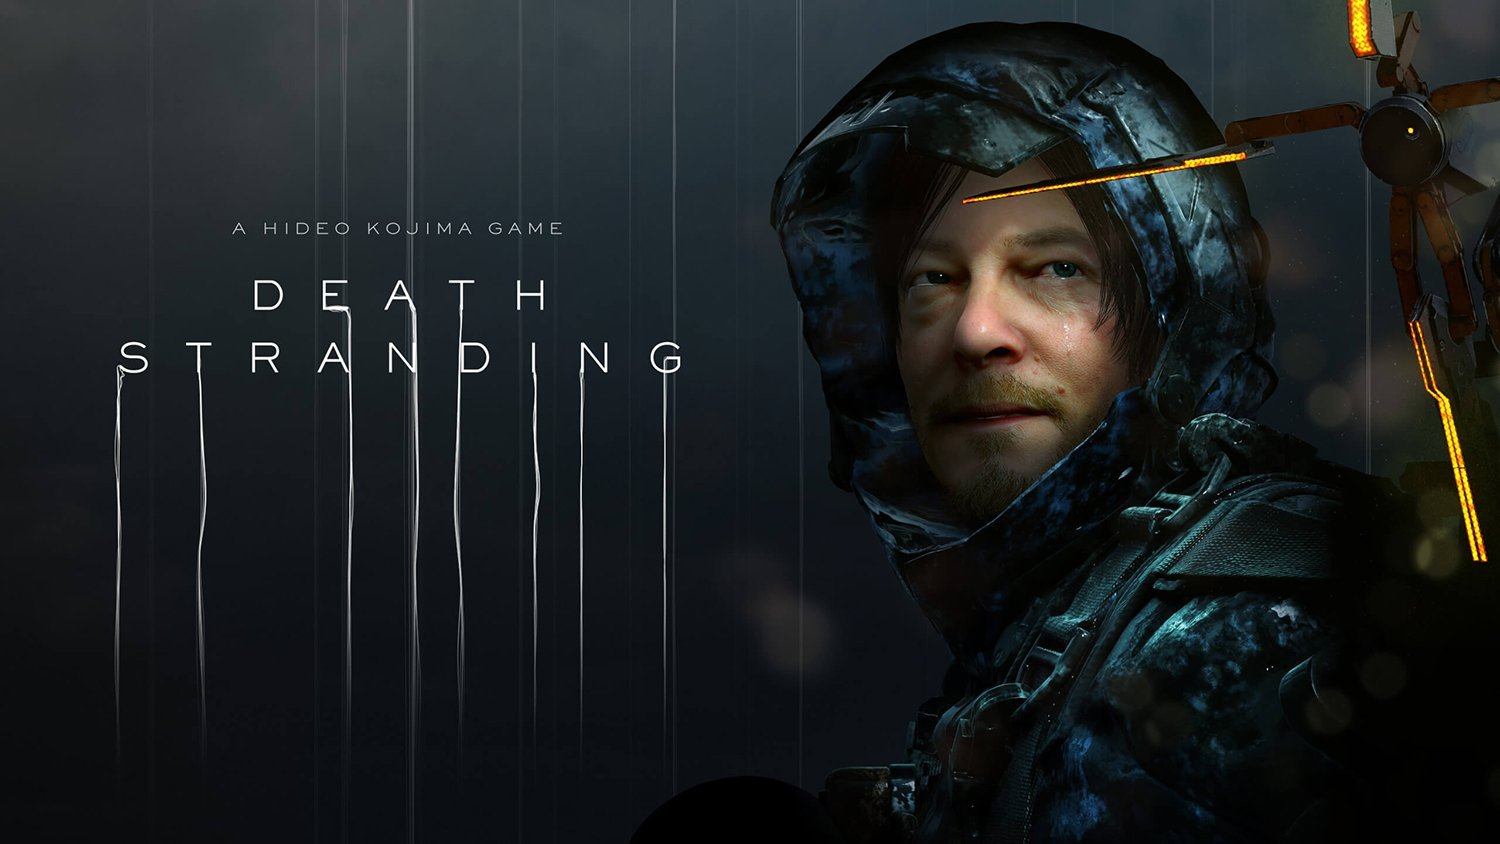 Death Stranding  13x19 inches Poster Print